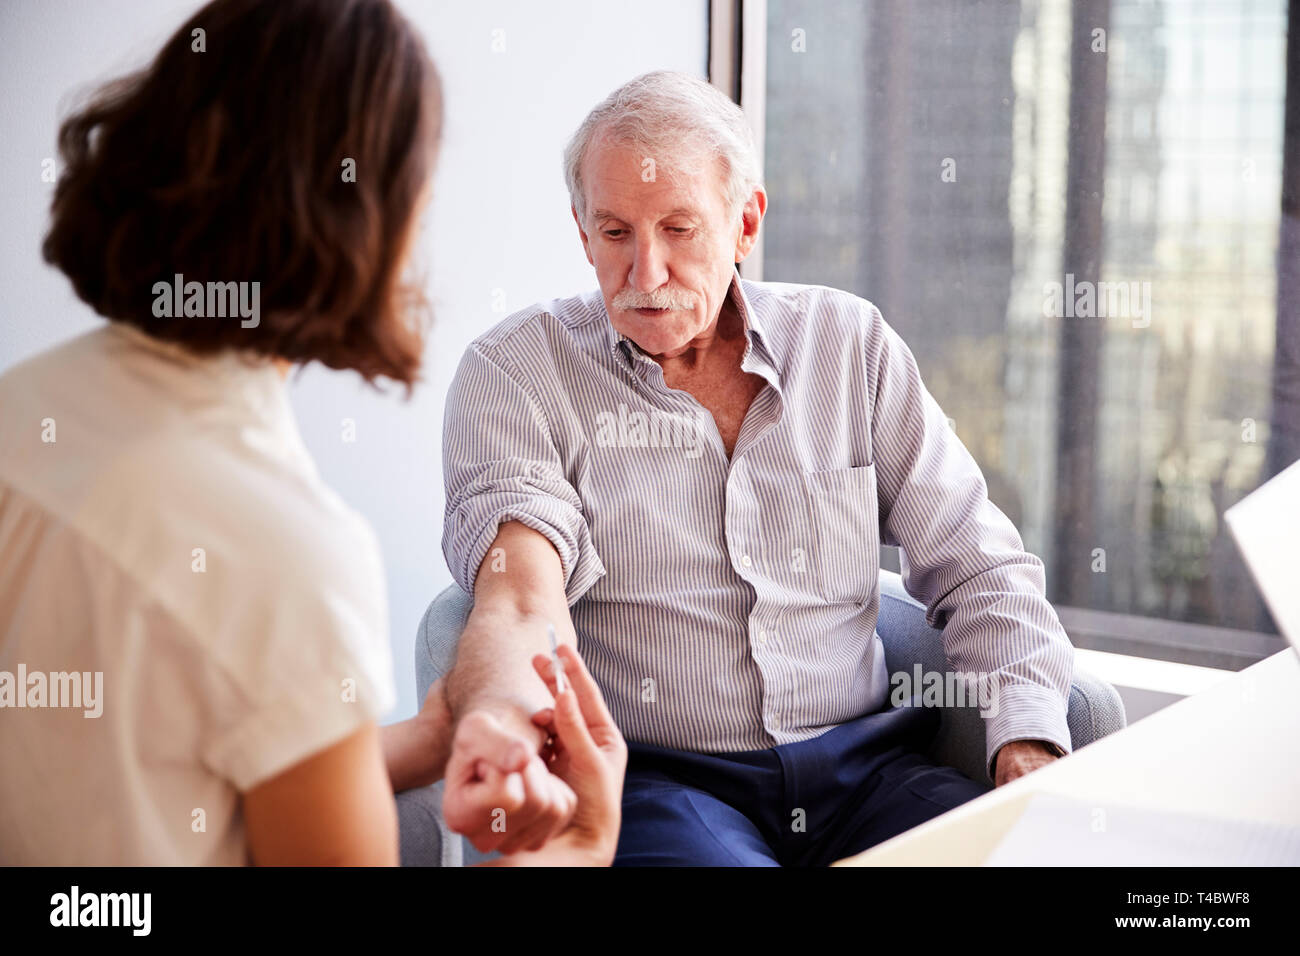 Senior Man Being Vaccinated With Flu Jab By Female Doctor In Hospital Office - Stock Image